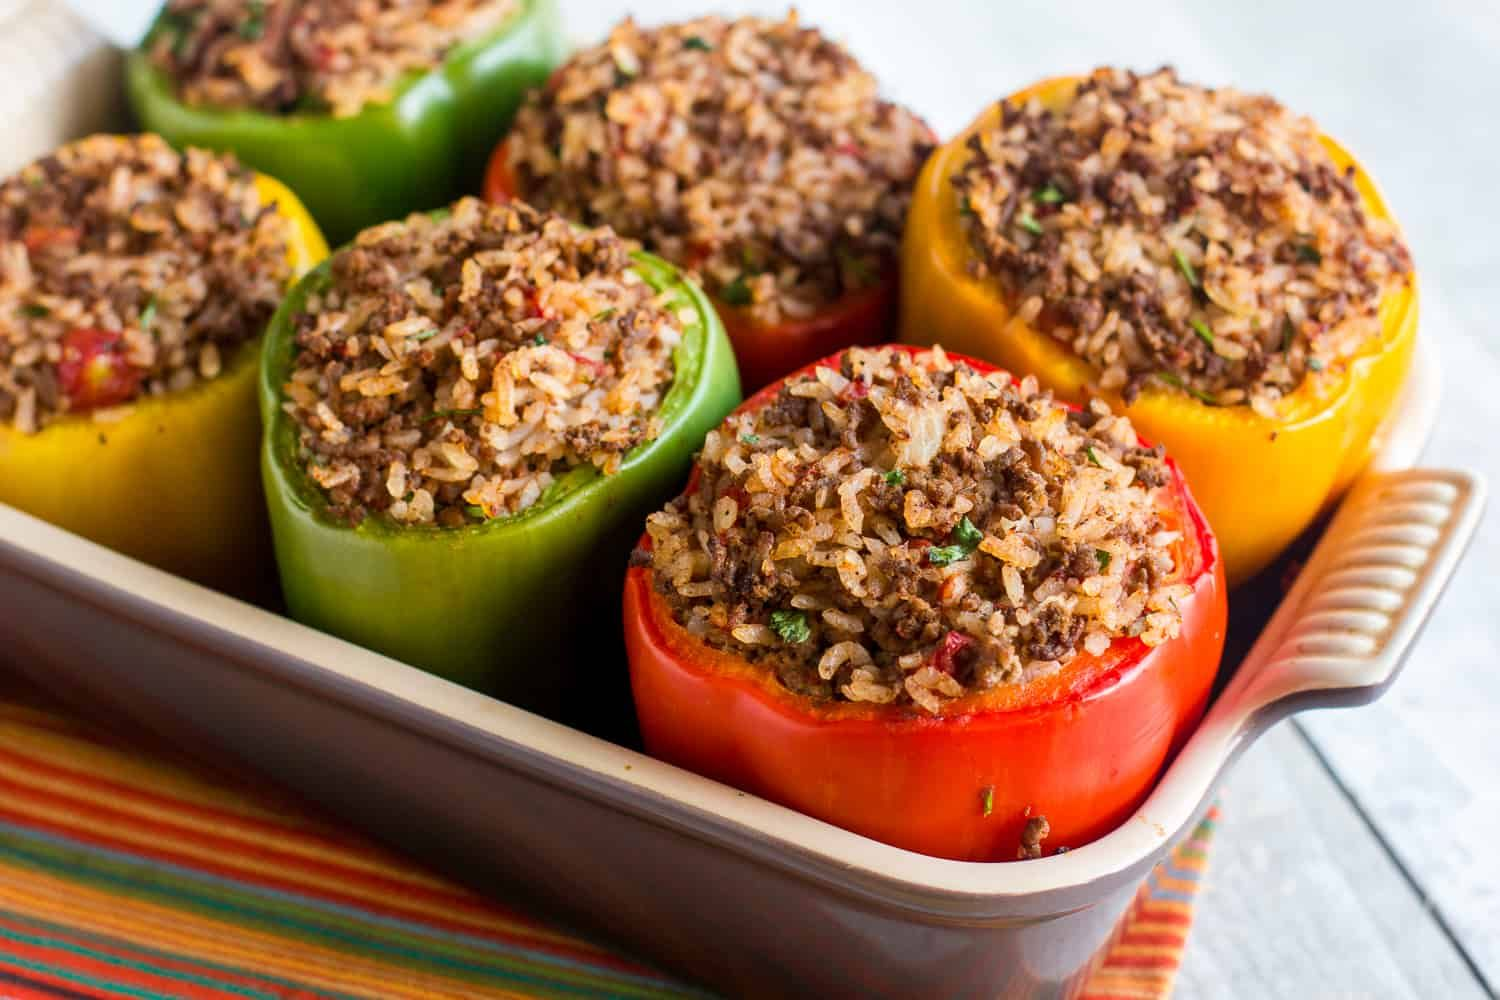 Stuffed Green Bell Pepper Recipe With Ground Beef And Rice Red Yellow And Orange Peppers Work Great As We Stuffed Peppers Peppers Recipes Bell Pepper Recipes